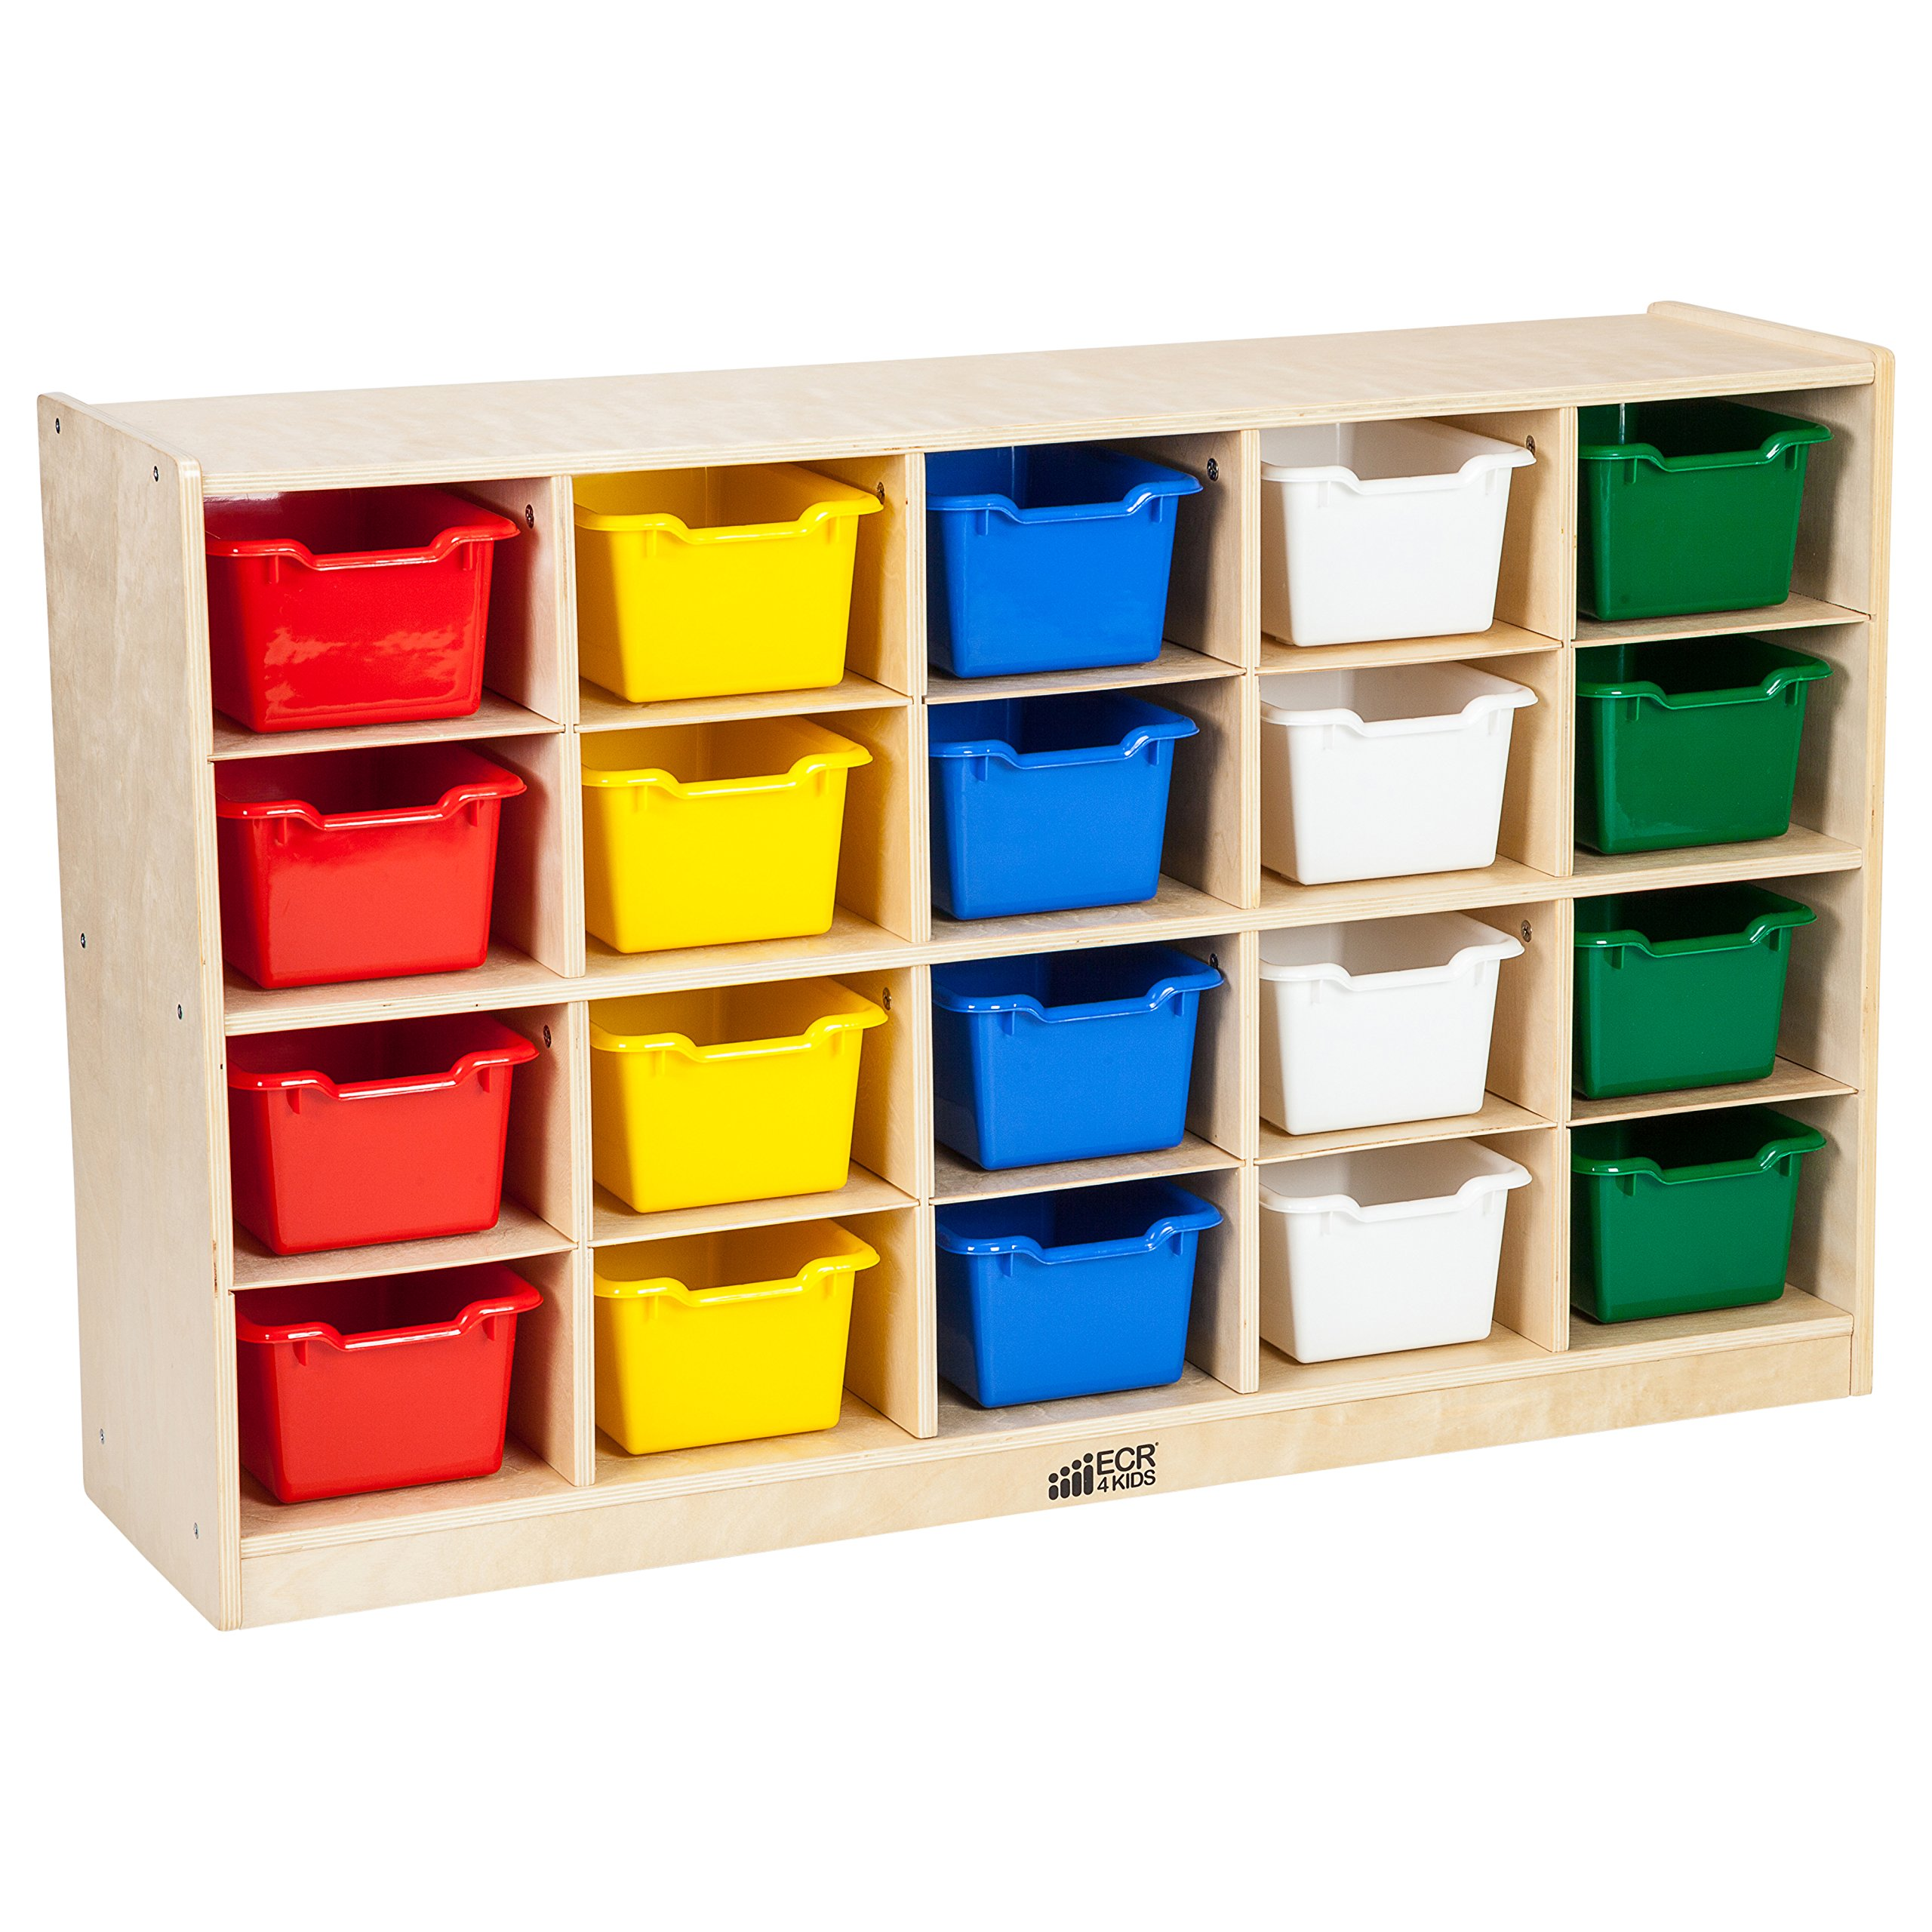 ECR4Kids Birch 20 Cubbie Tray Cabinet with Scoop Front Bins, Assorted Colors by ECR4Kids